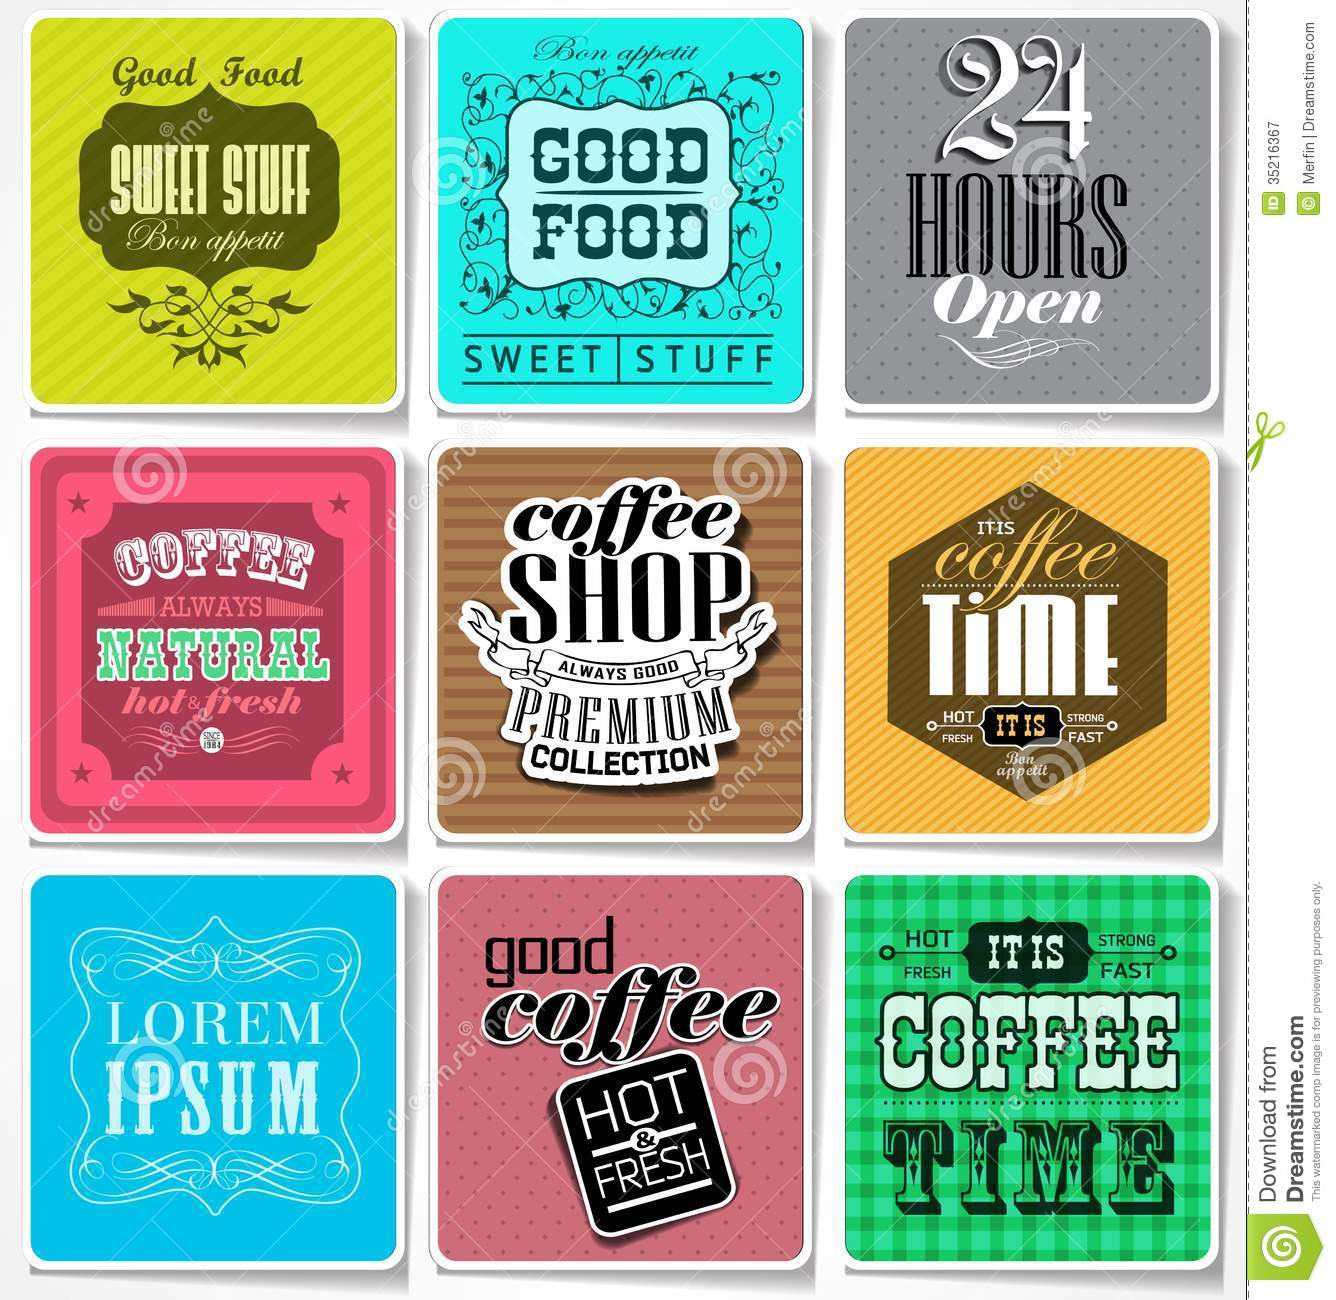 Retro Labels And Typography Royalty Free Stock